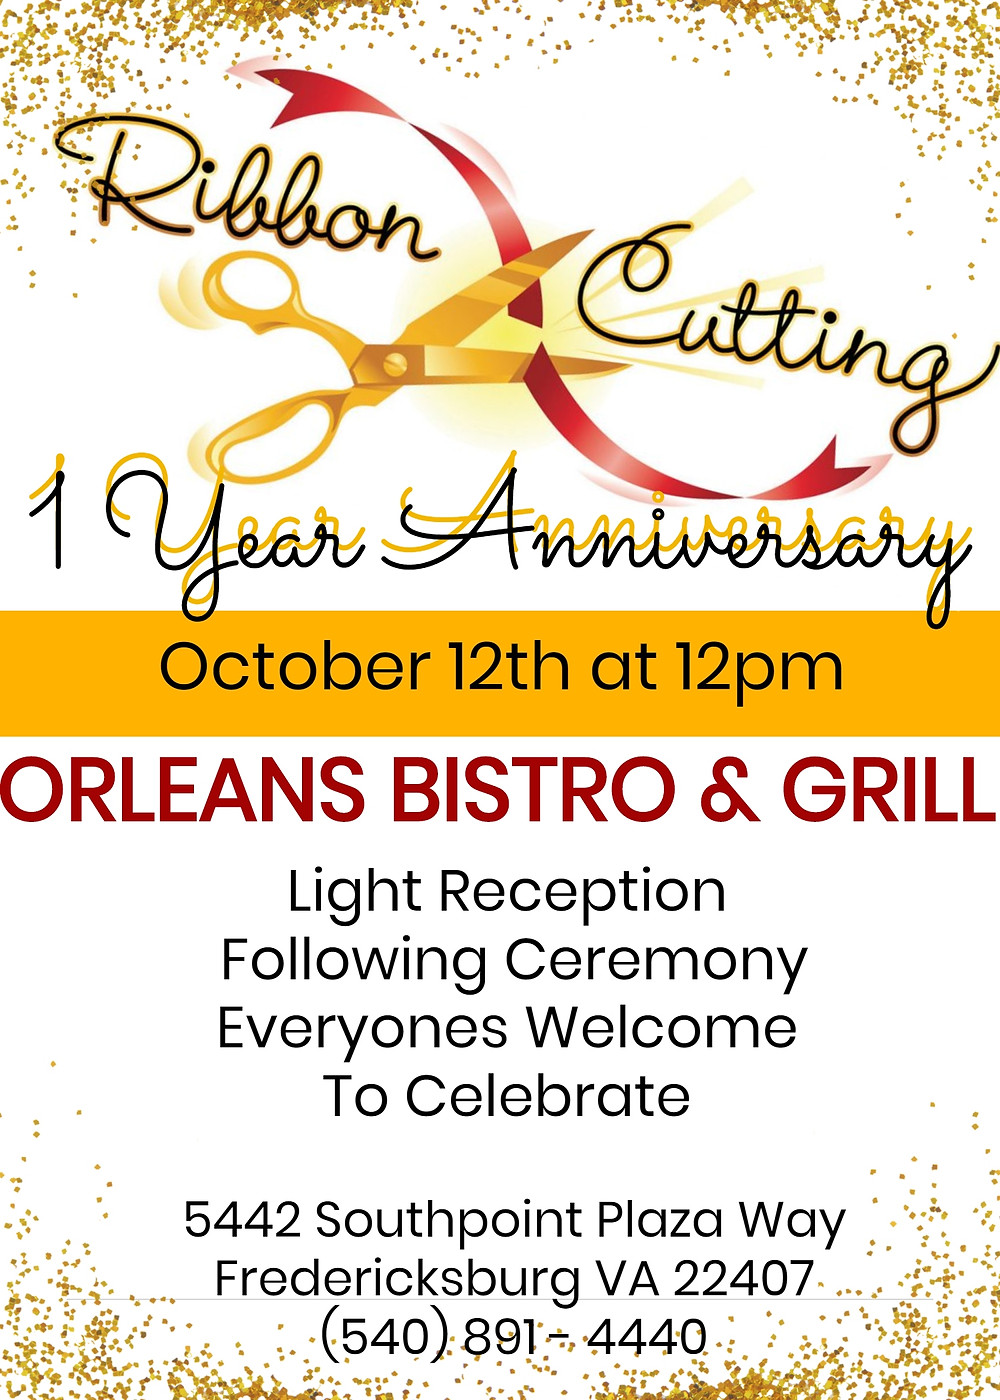 NEXT WEEK WE TURN ONE! COME OUT AND CELEBRATE!